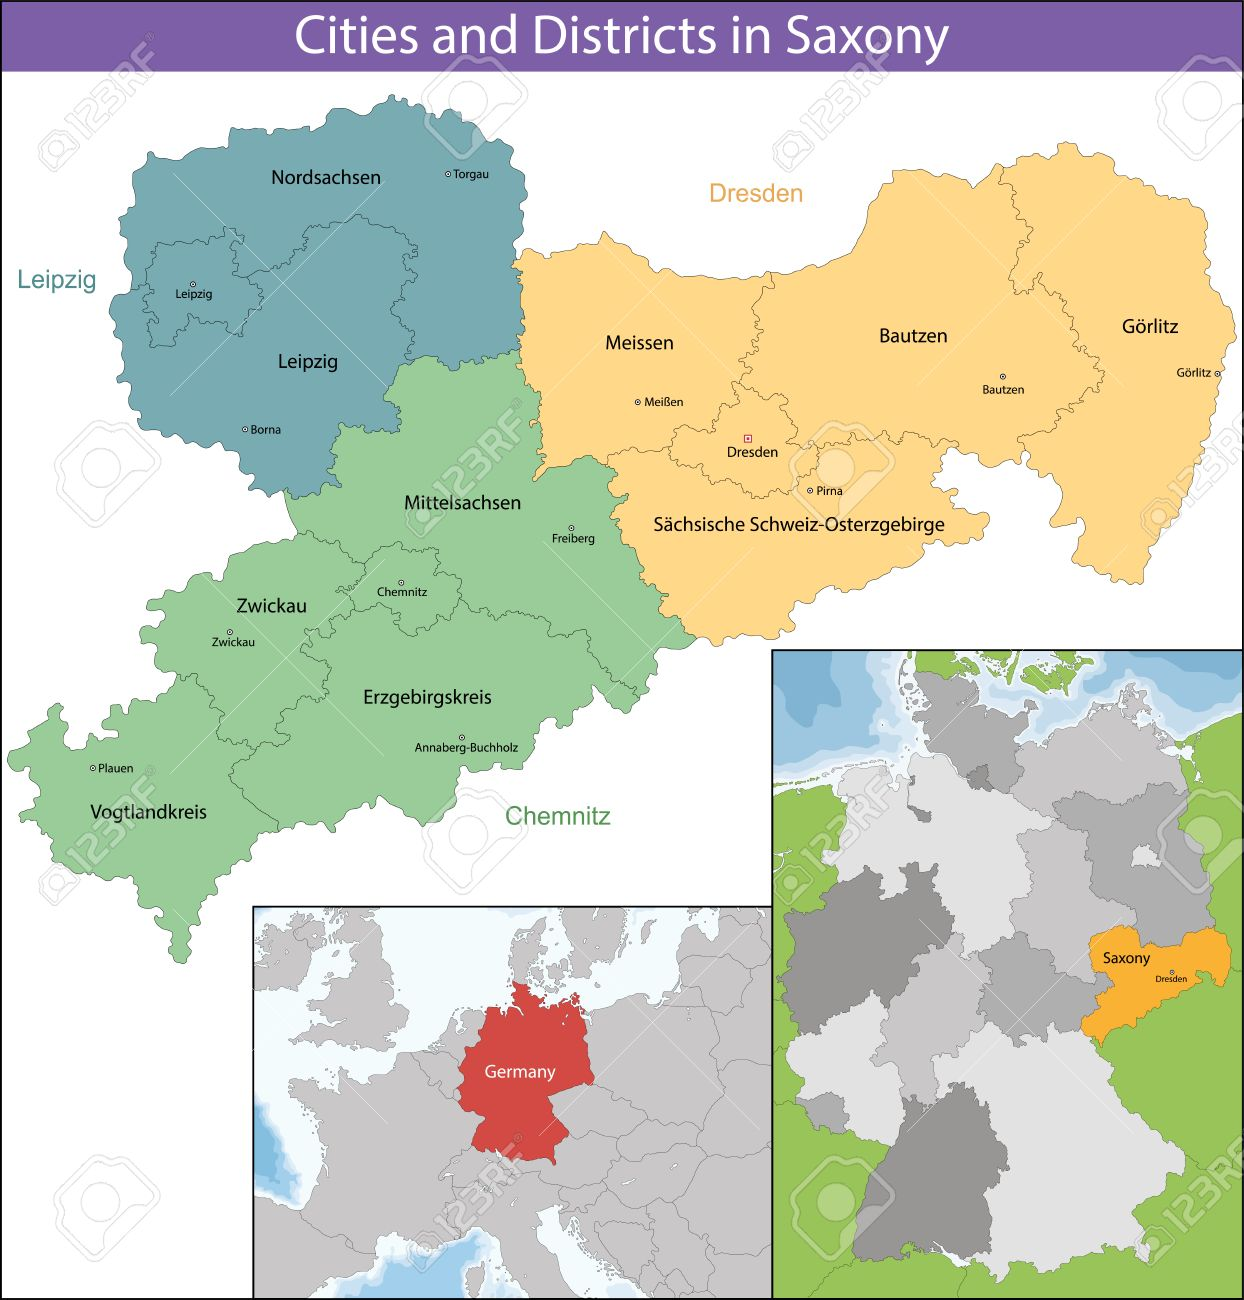 The Free State Of Saxony Is A Landlocked Federal State Of Germany